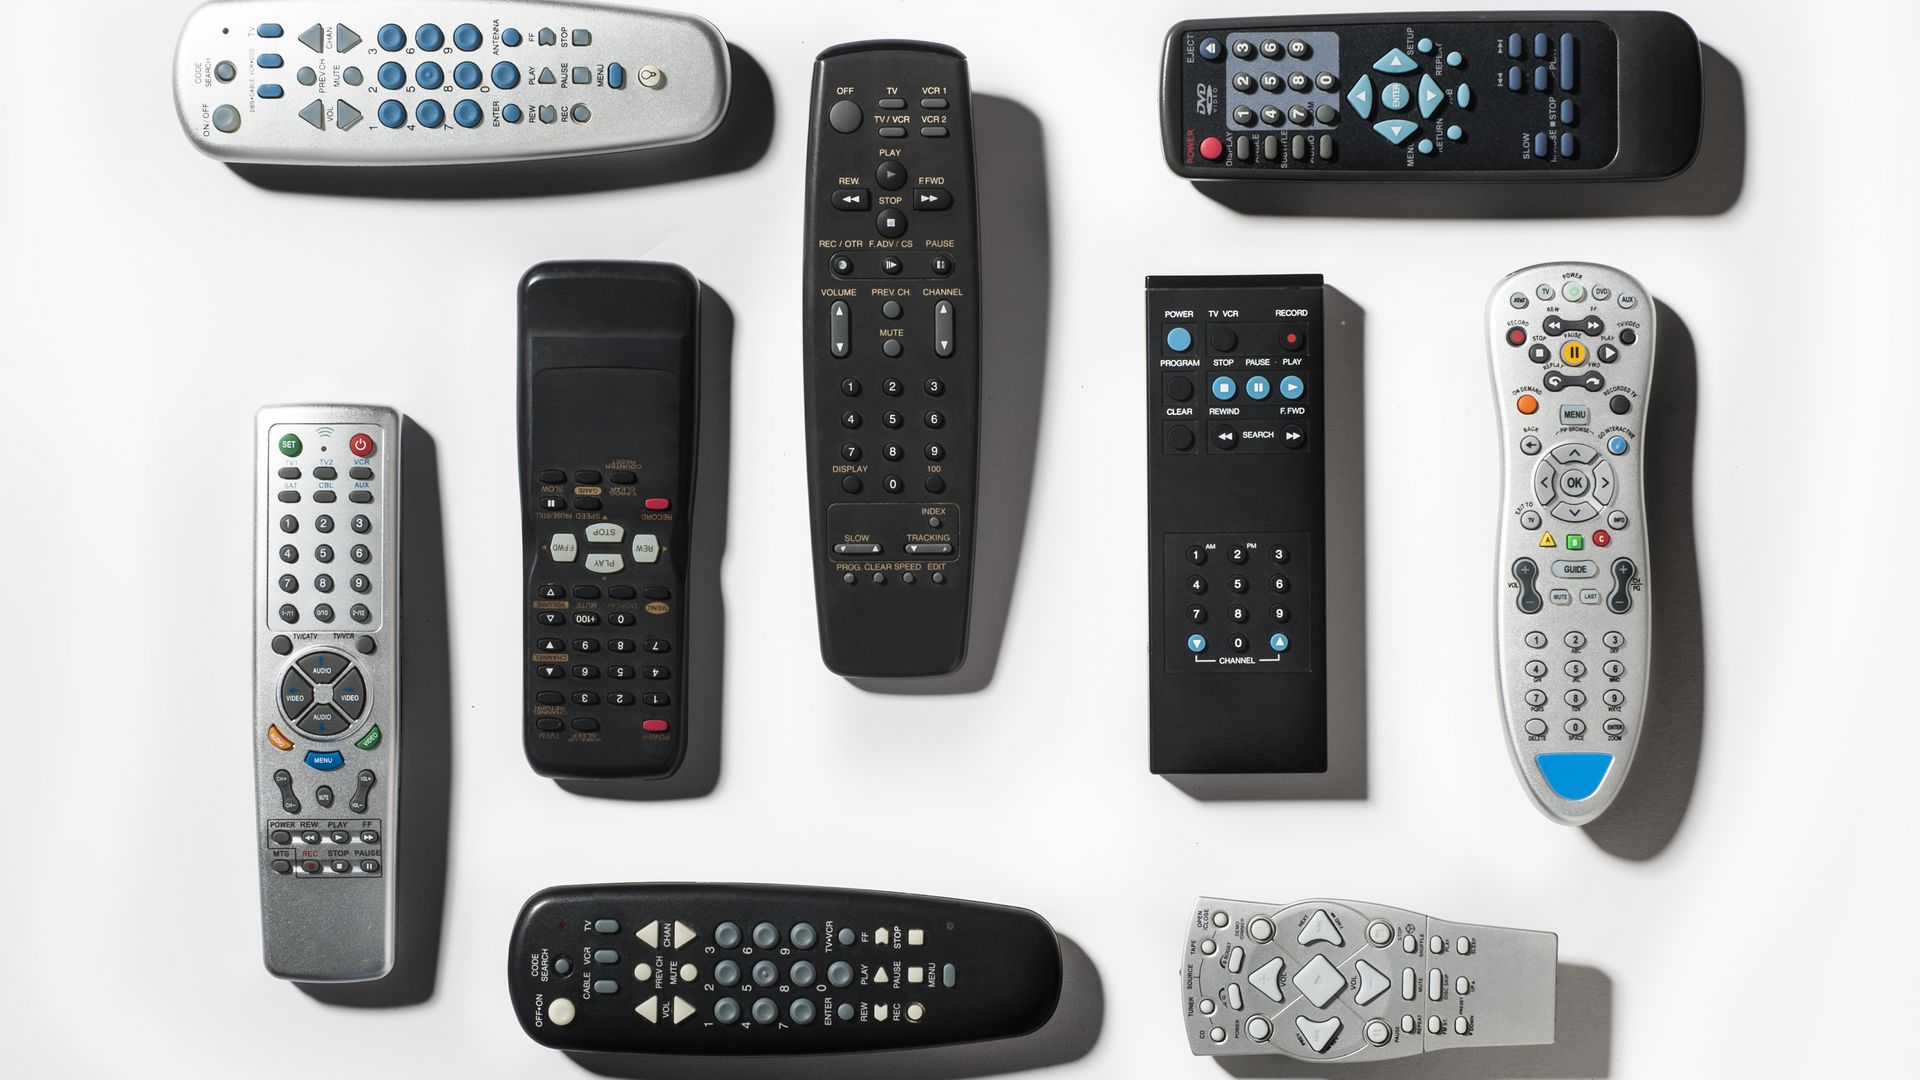 Cable TV remote controls